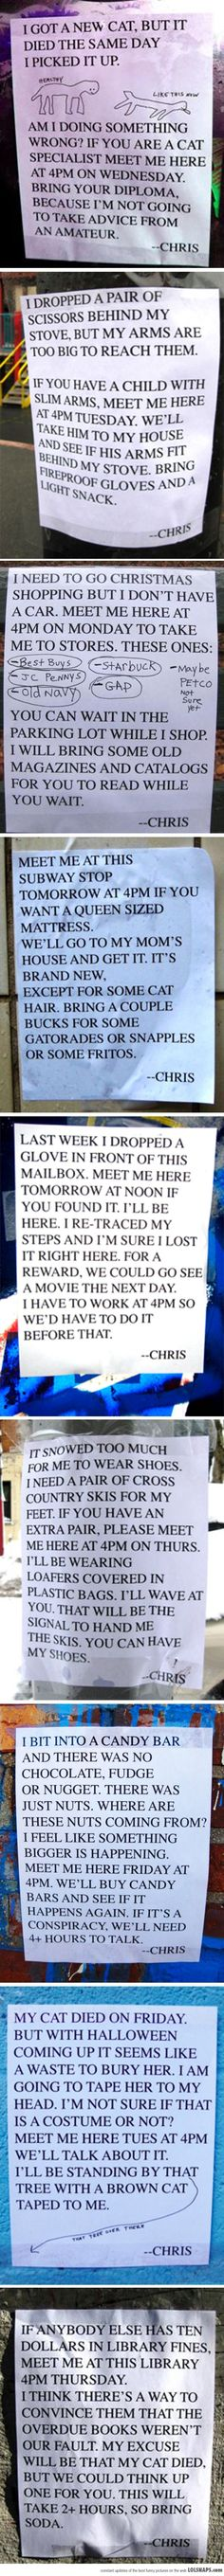 Chris Seems Like A Silly Guy. I hope it's not my Chris! But that would explain why he doesn't answer his phone at 4pm. LOL